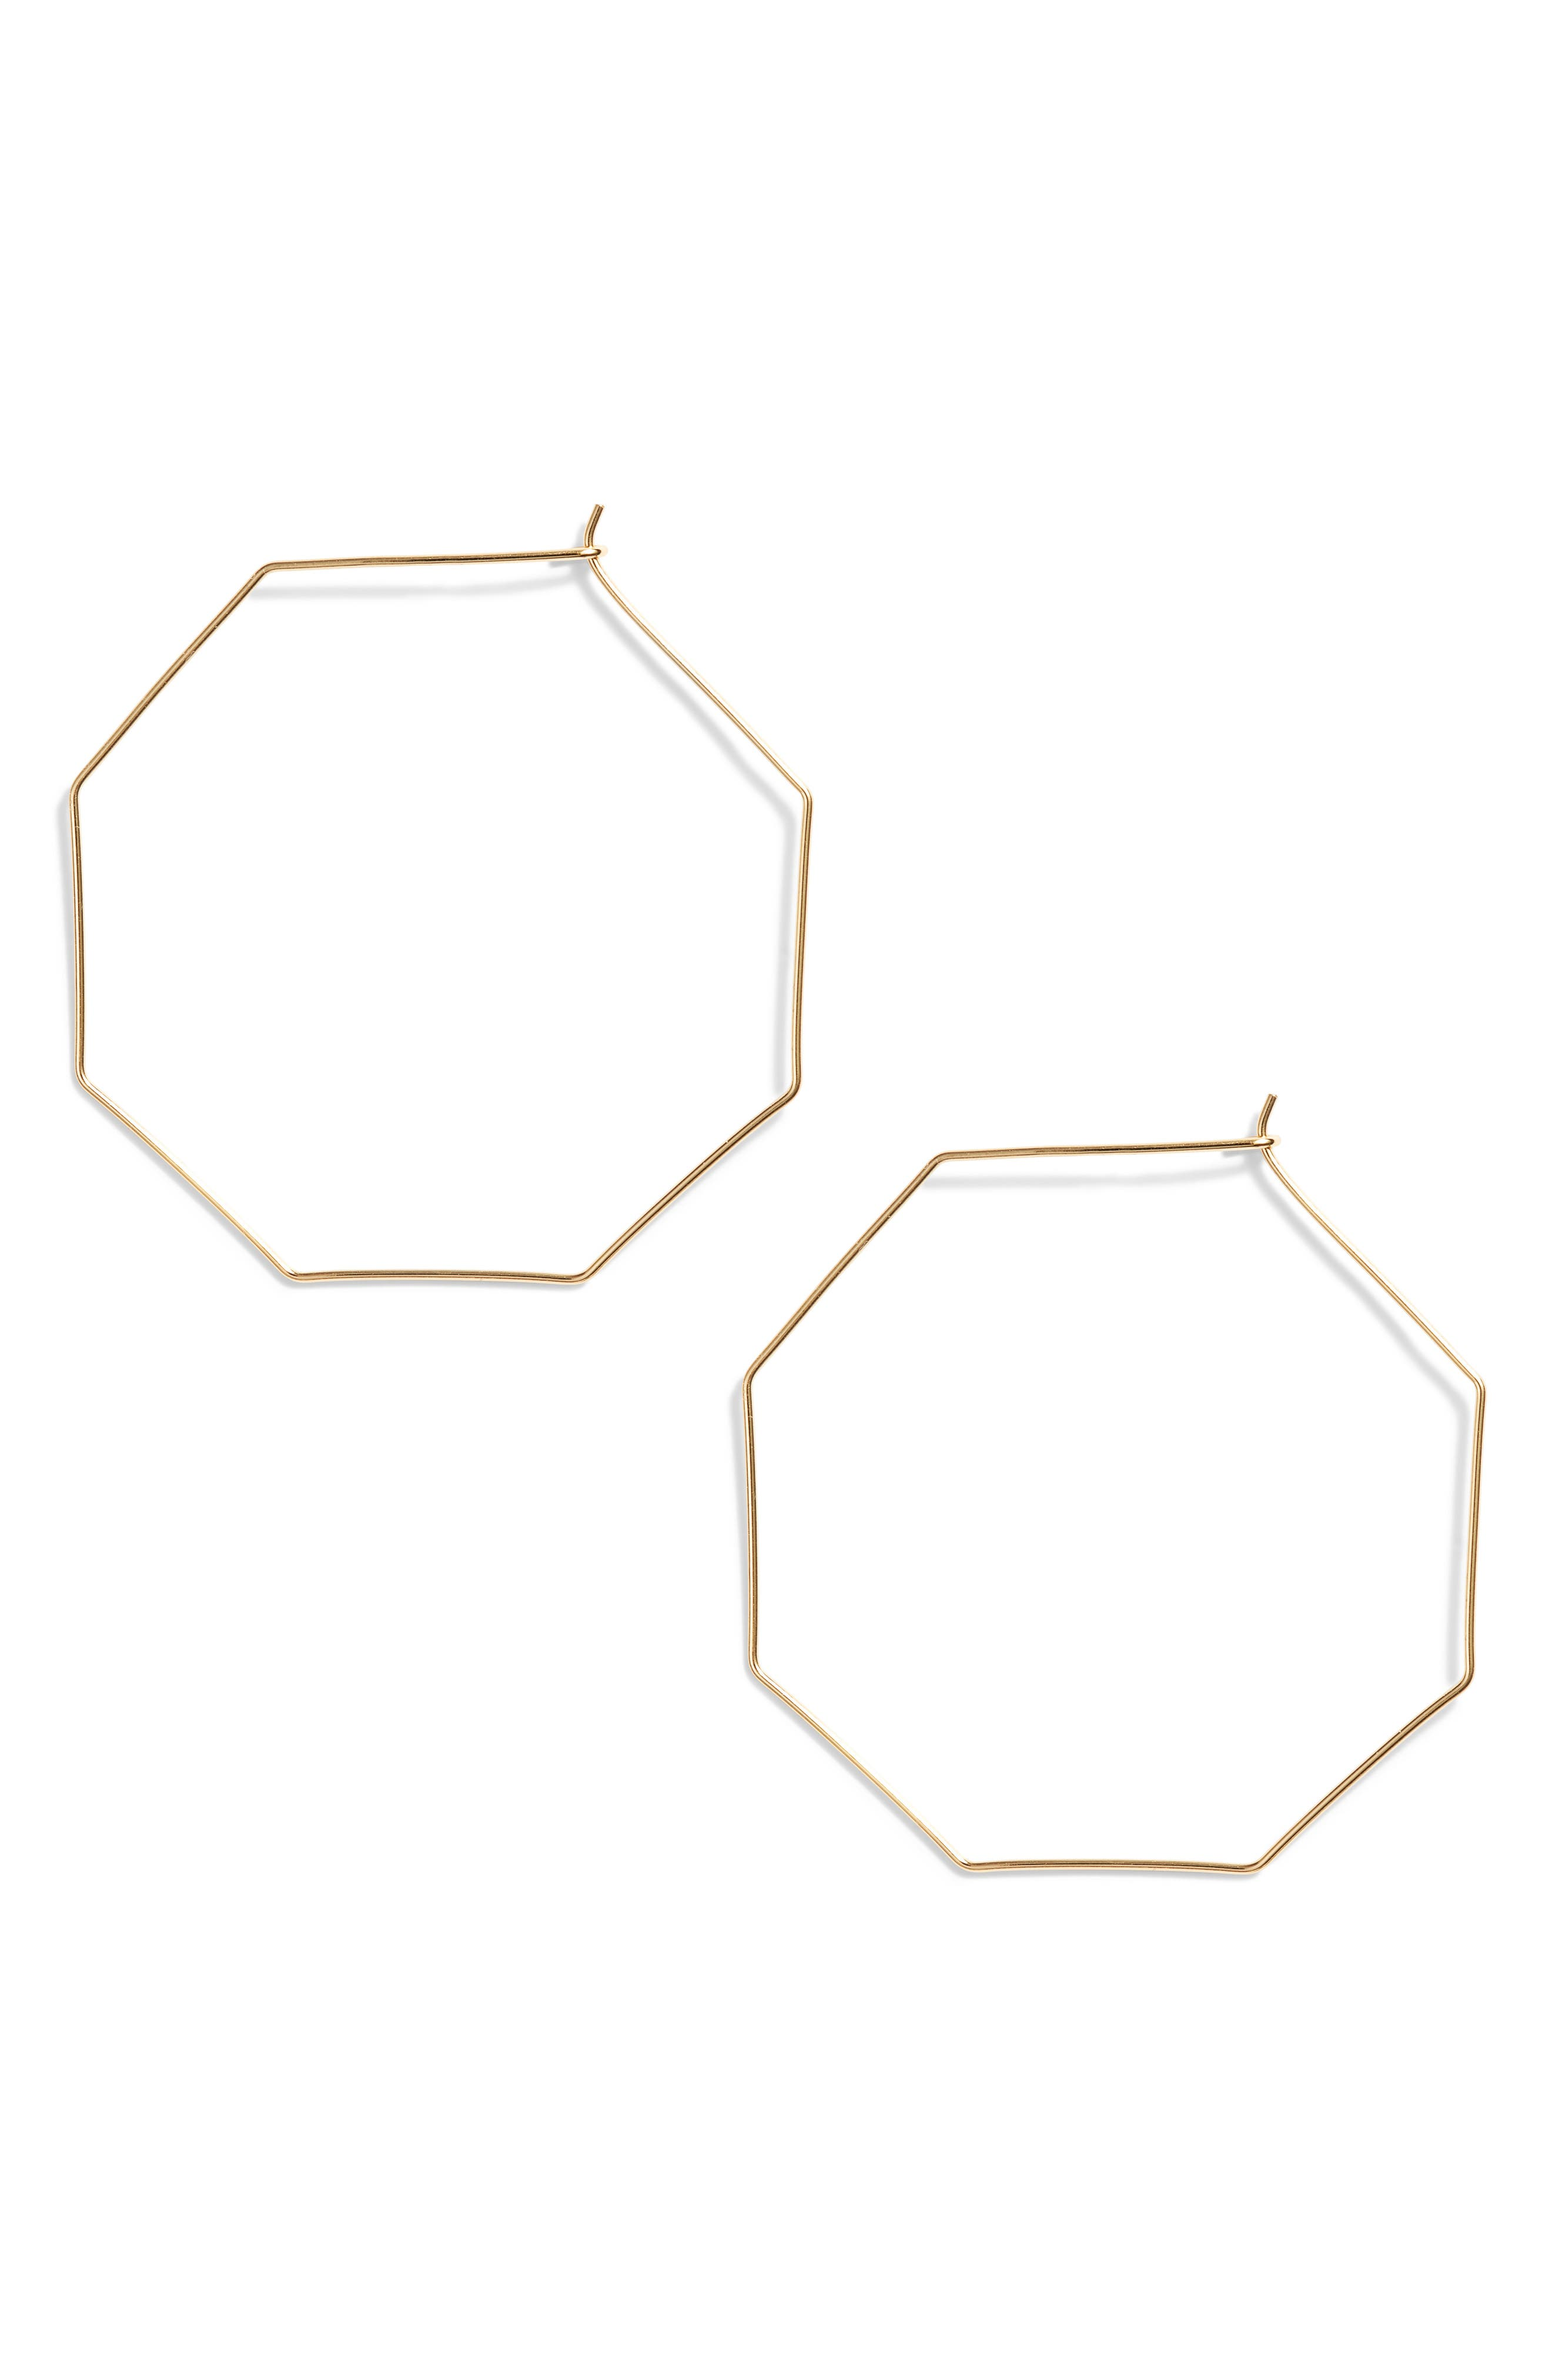 Octagon Hoop Earrings,                         Main,                         color, GOLD